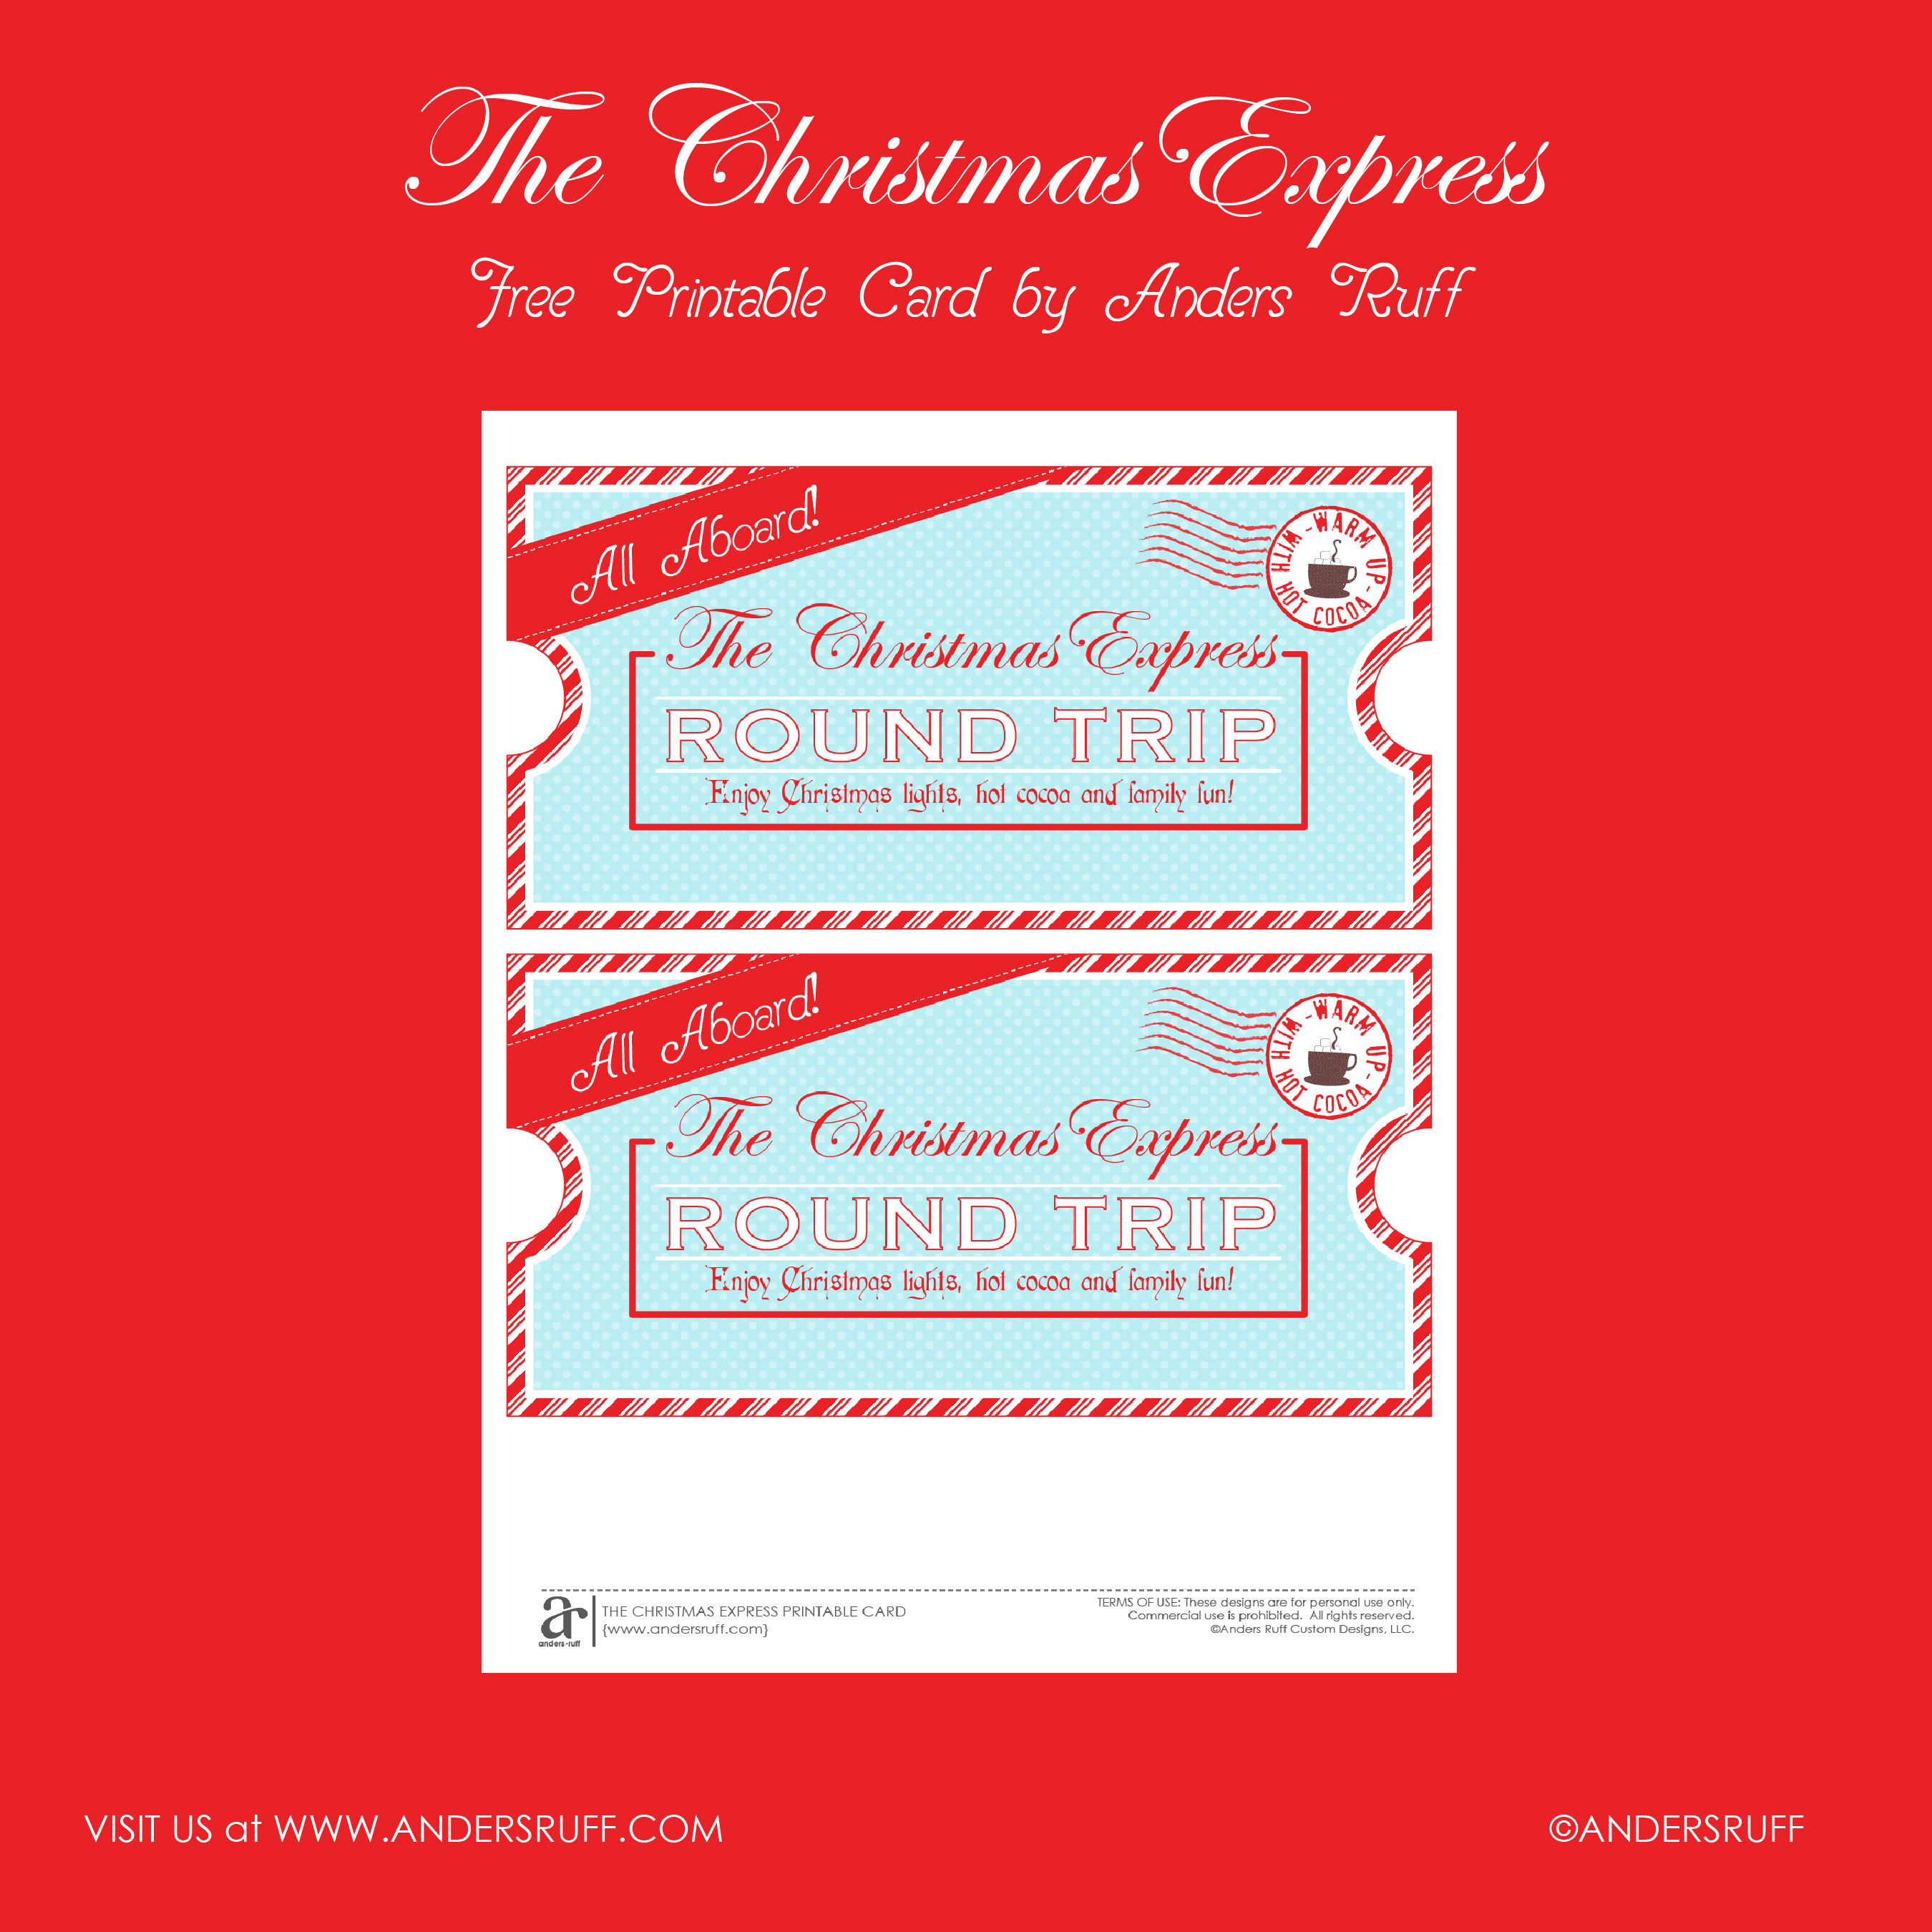 Christmas Party Ticket Template Free: Ruff Draft: FREE PRINTABLE Christmas Express Ticket